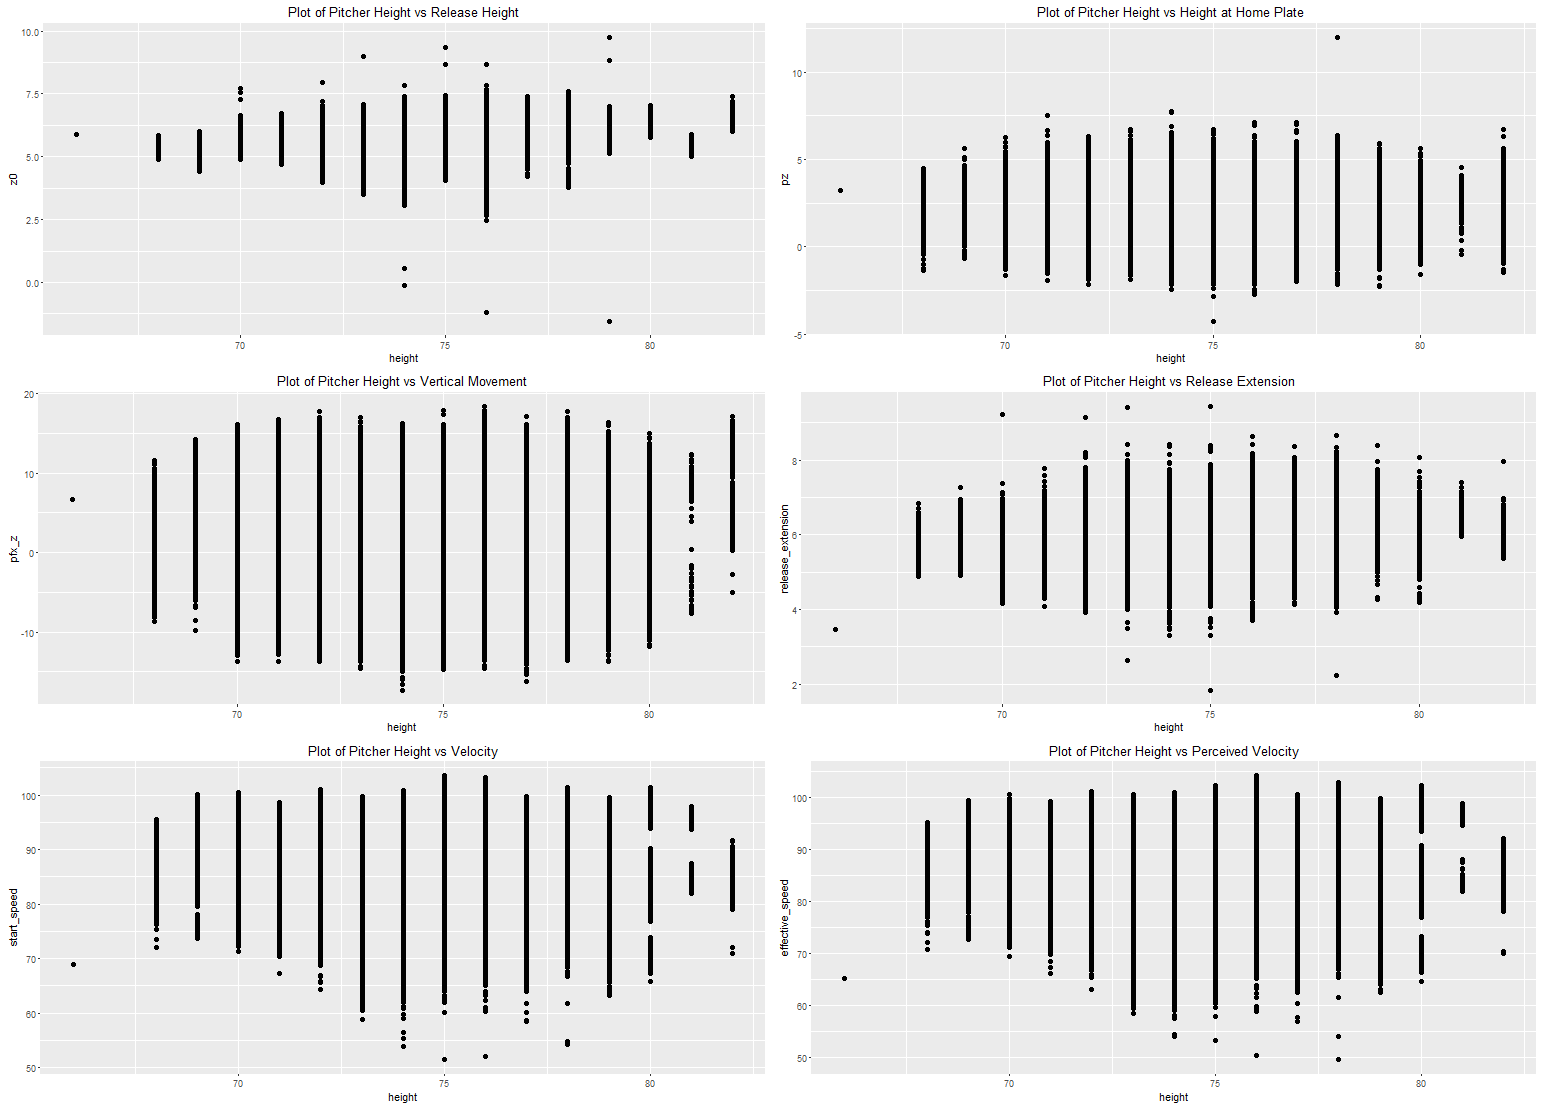 Figure 7: Scatterplots, all pitches thrown